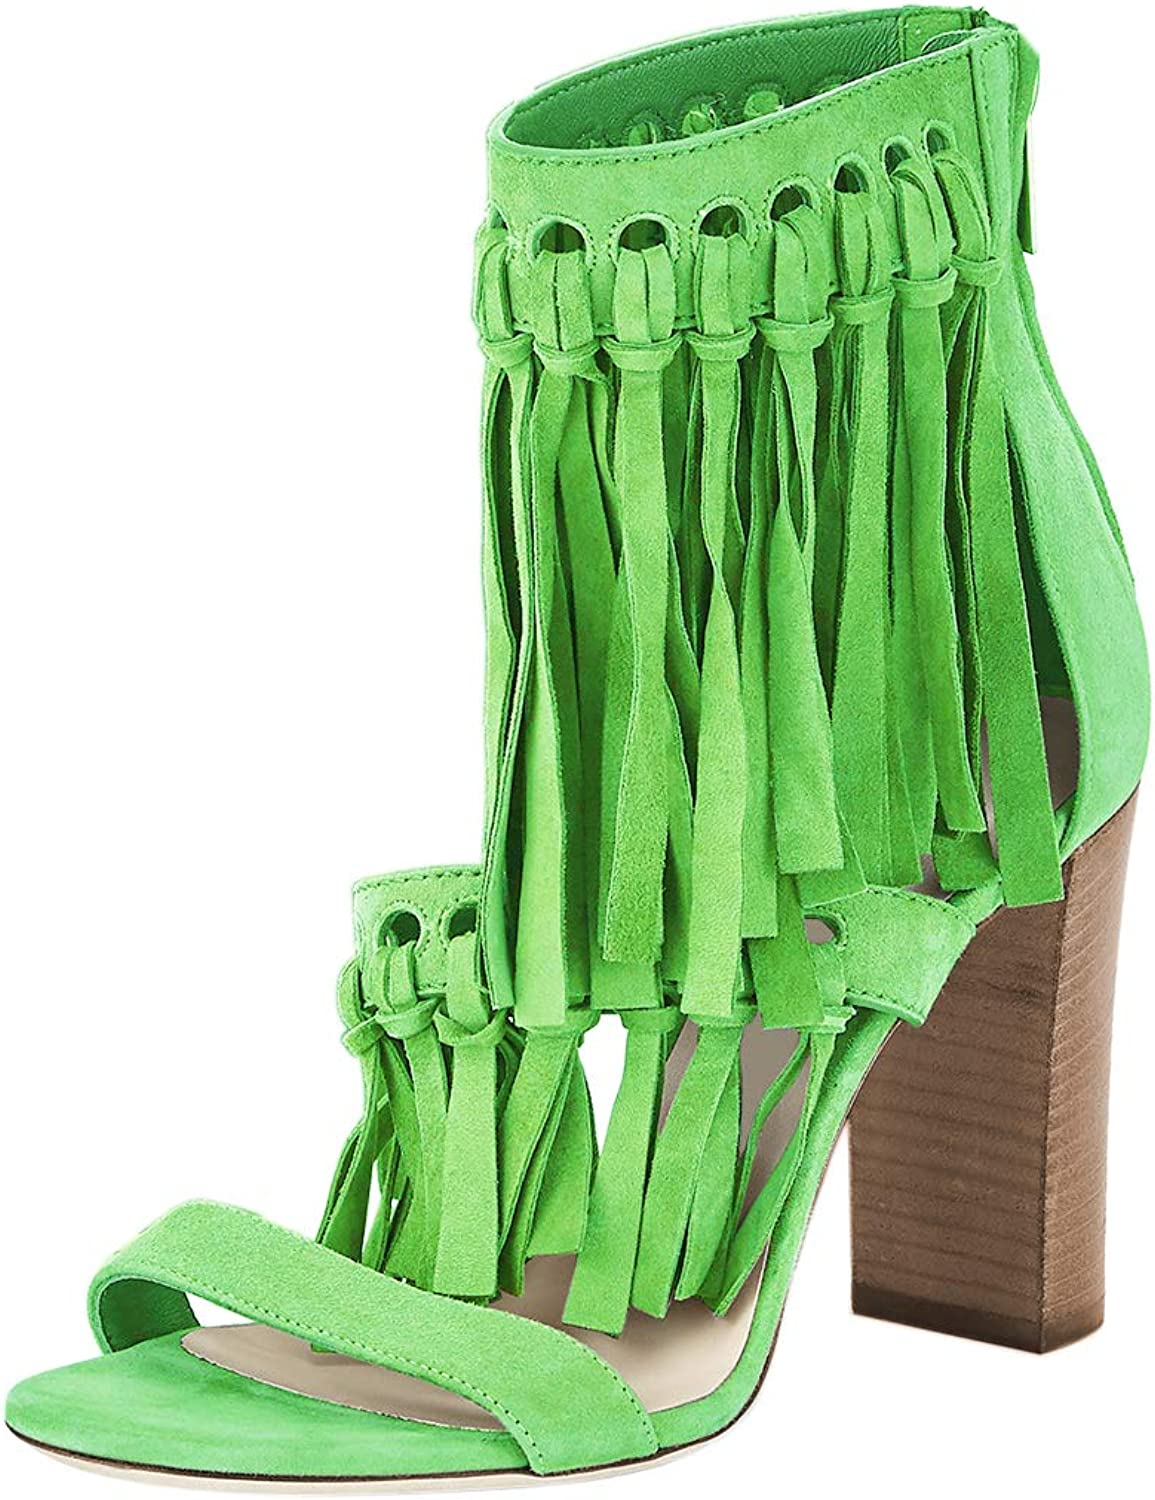 NJ Women Fashion Open Toe Sandals Chunky Stacked High Heels Party Pumps shoes with Tassels Back Zipper